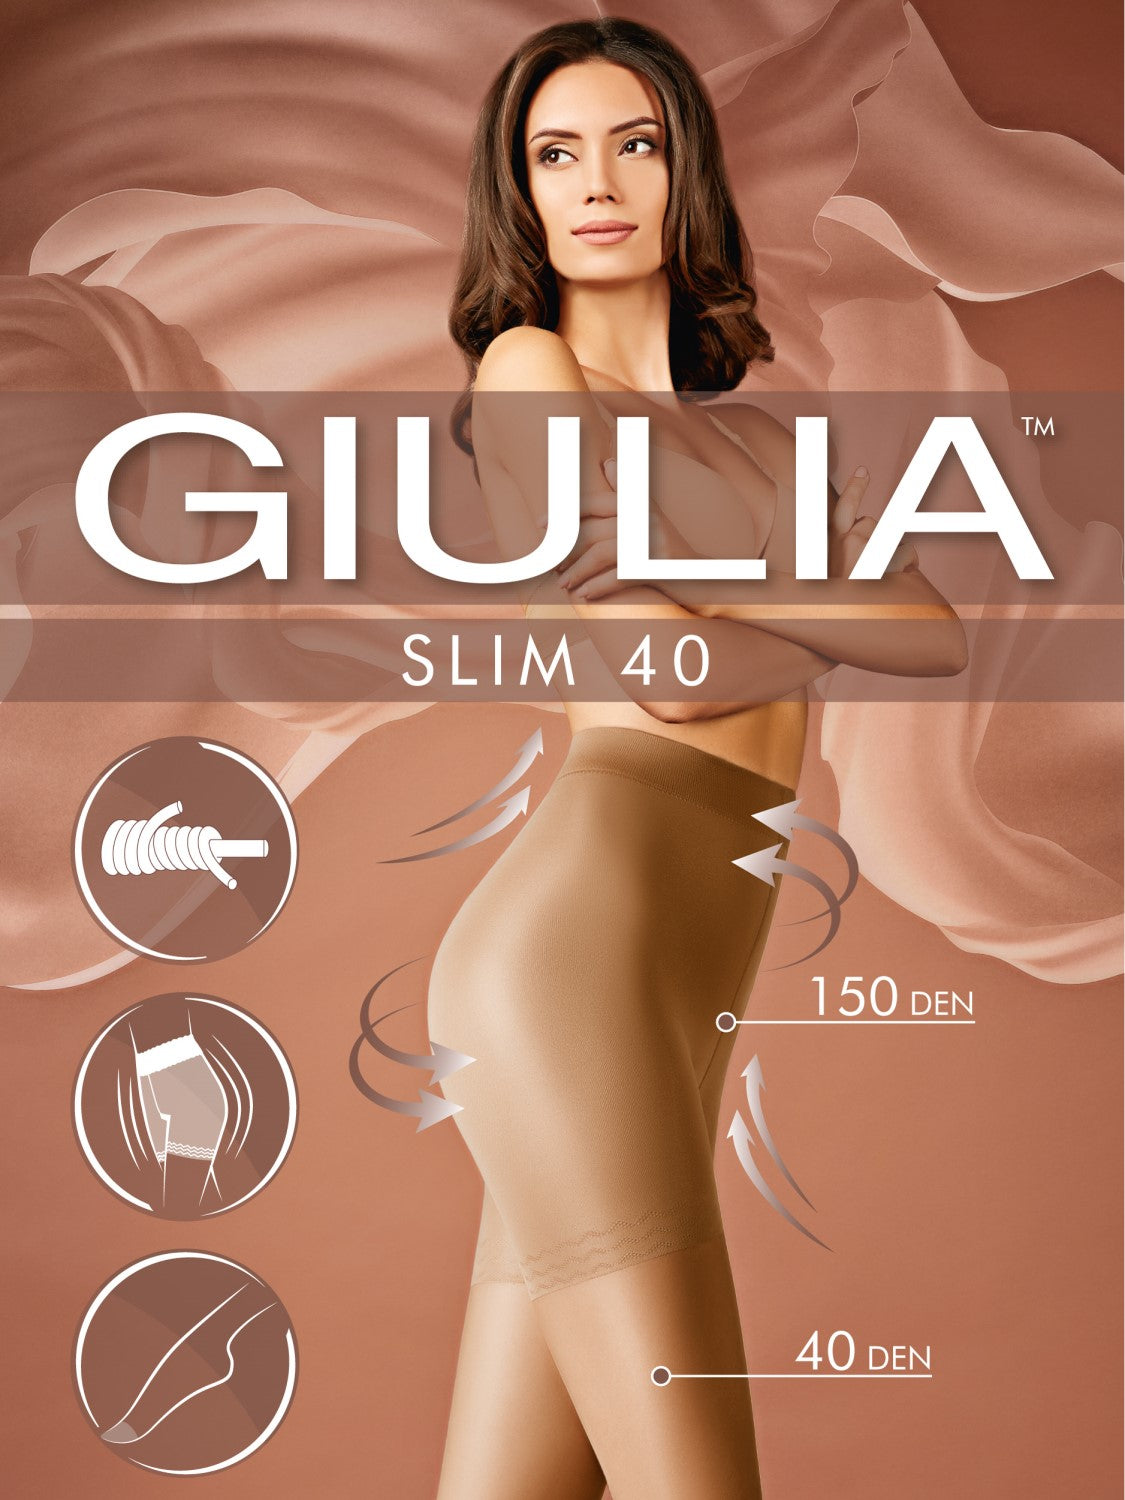 Giulia Slim 40 slimming stocking - Hosetess best compression stockings free download